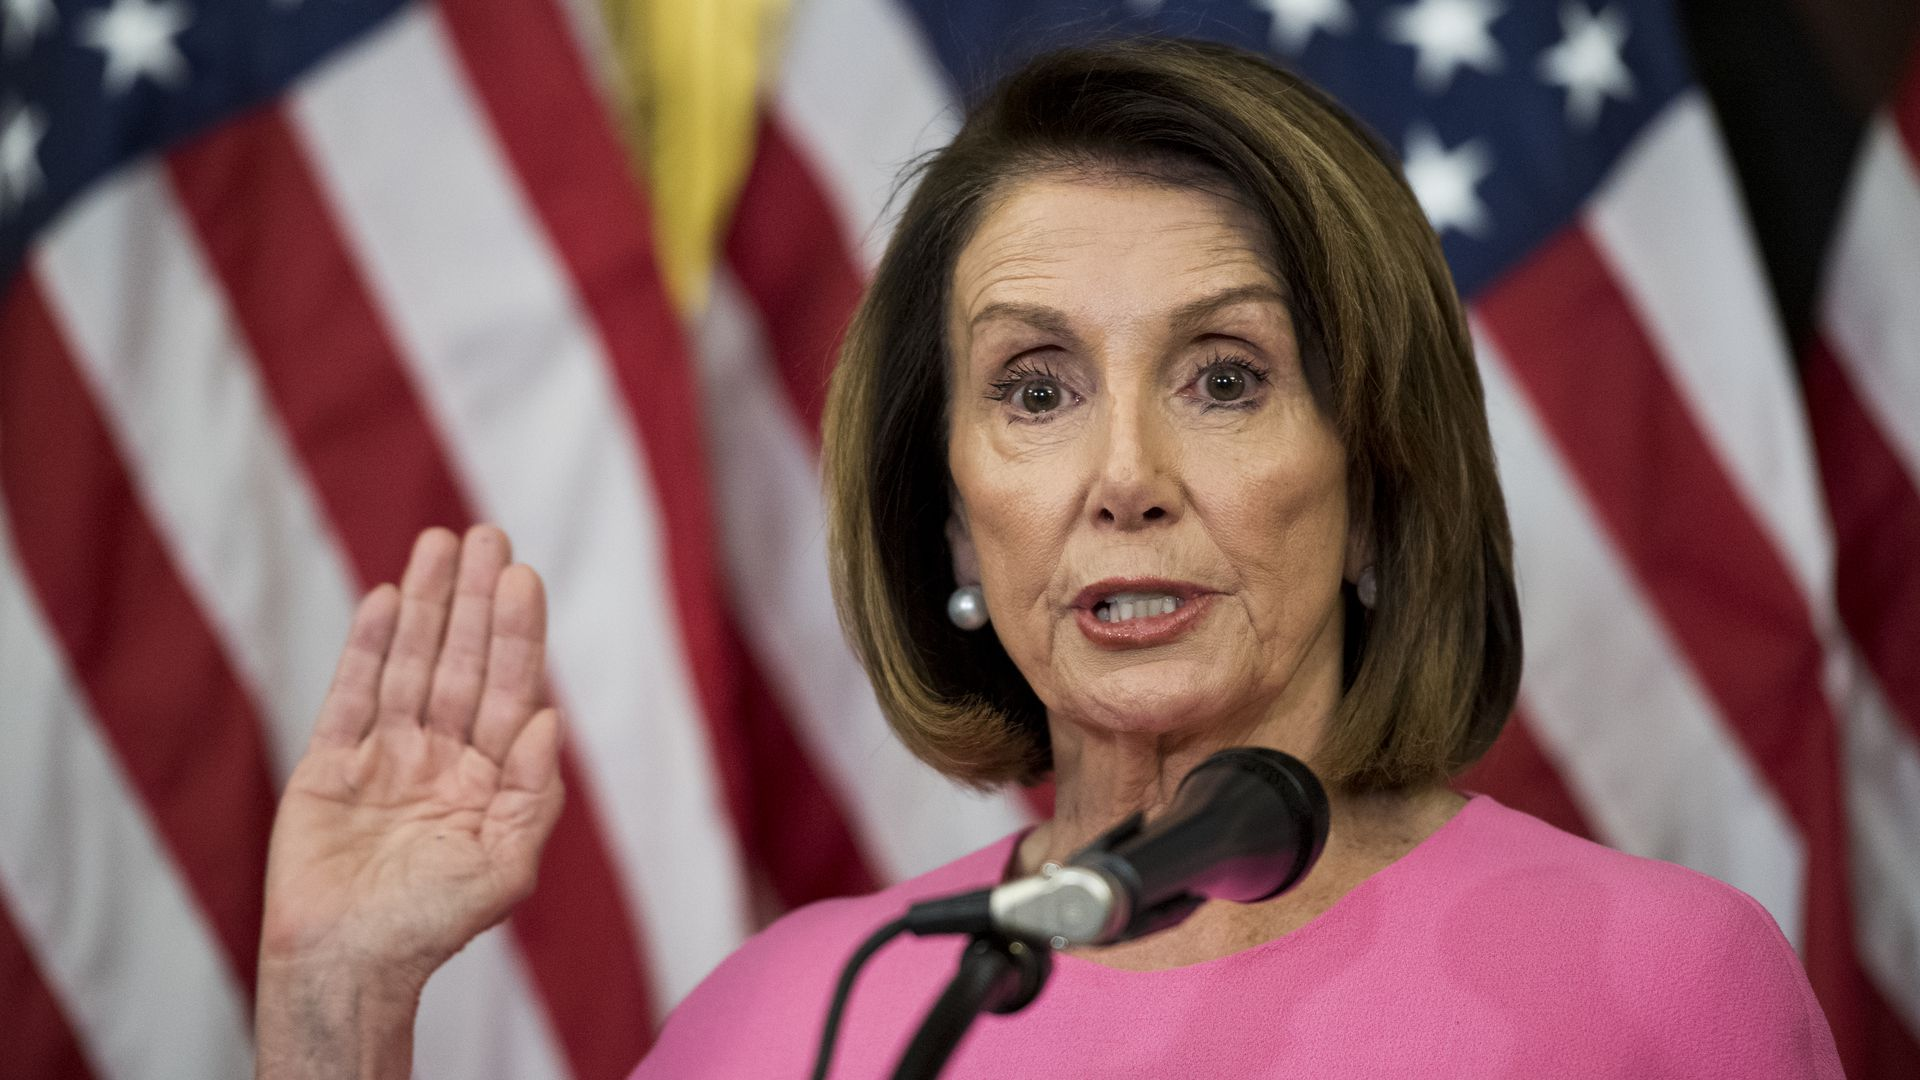 Nancy Pelosi raises her hand as if she's taking the oath of office